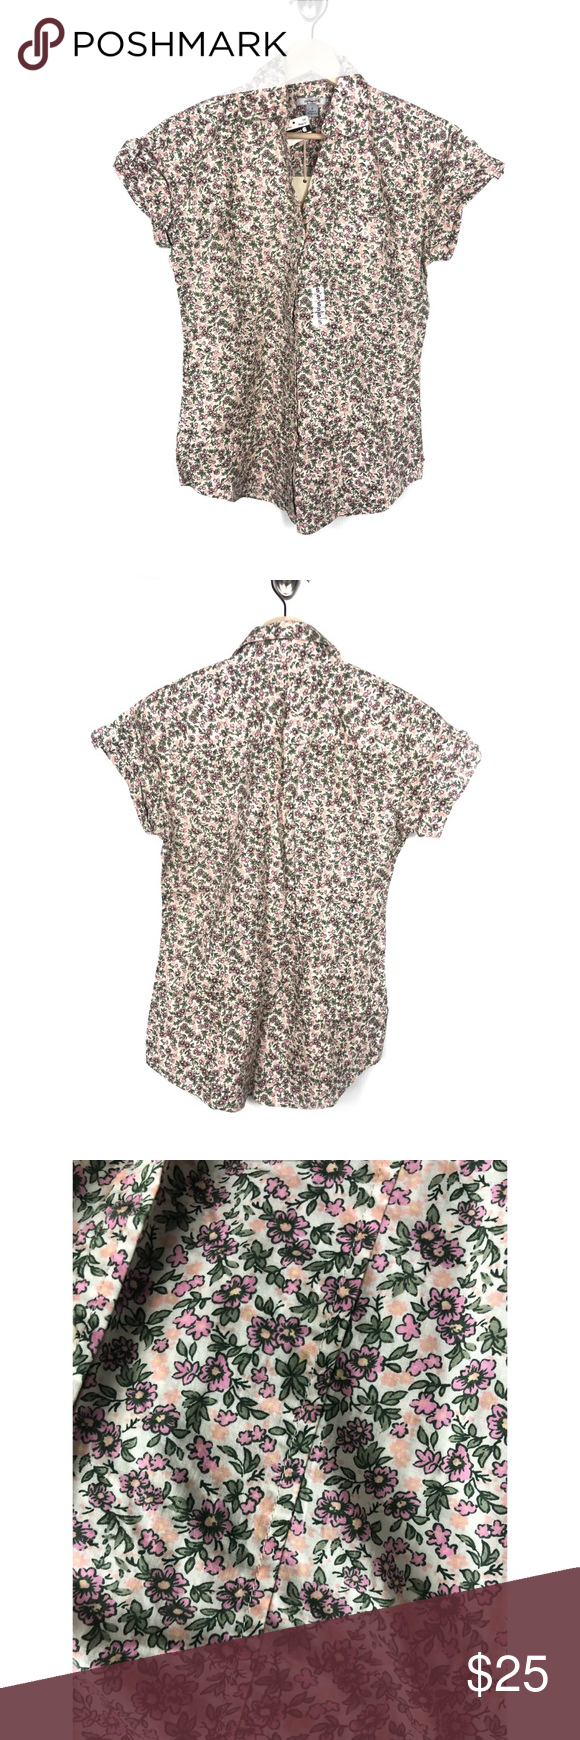 "Carhartt Women's floral button down short sleeve ✨ Carhartt Women's floral button down short sleeve ✨ New with tags never worn  Size small regular  B: 19"" flat  L: 27"" flat   Smoke and pet free household ✨ Carhartt Tops Button Down Shirts #carharttwomen Carhartt Women's floral button down short sleeve ✨ Carhartt Women's floral button down short sleeve ✨ New with tags never worn  Size small regular  B: 19"" flat  L: 27"" flat   Smoke and pet free household ✨ Carhartt Top #carharttwomen"